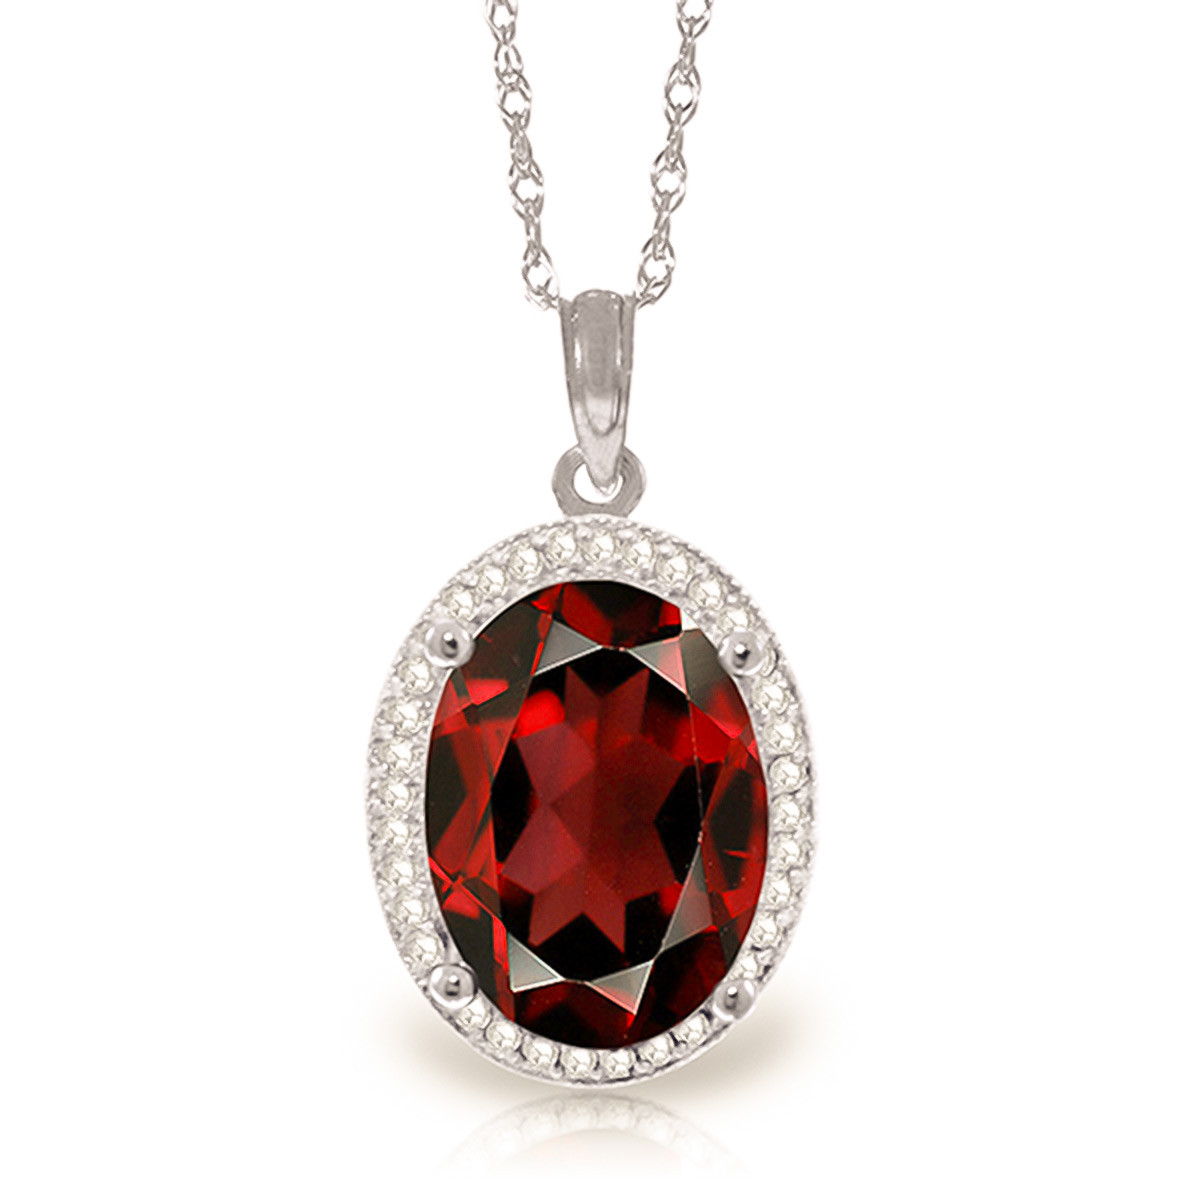 Garnet Halo Pendant Necklace 6.23 ctw in 9ct White Gold